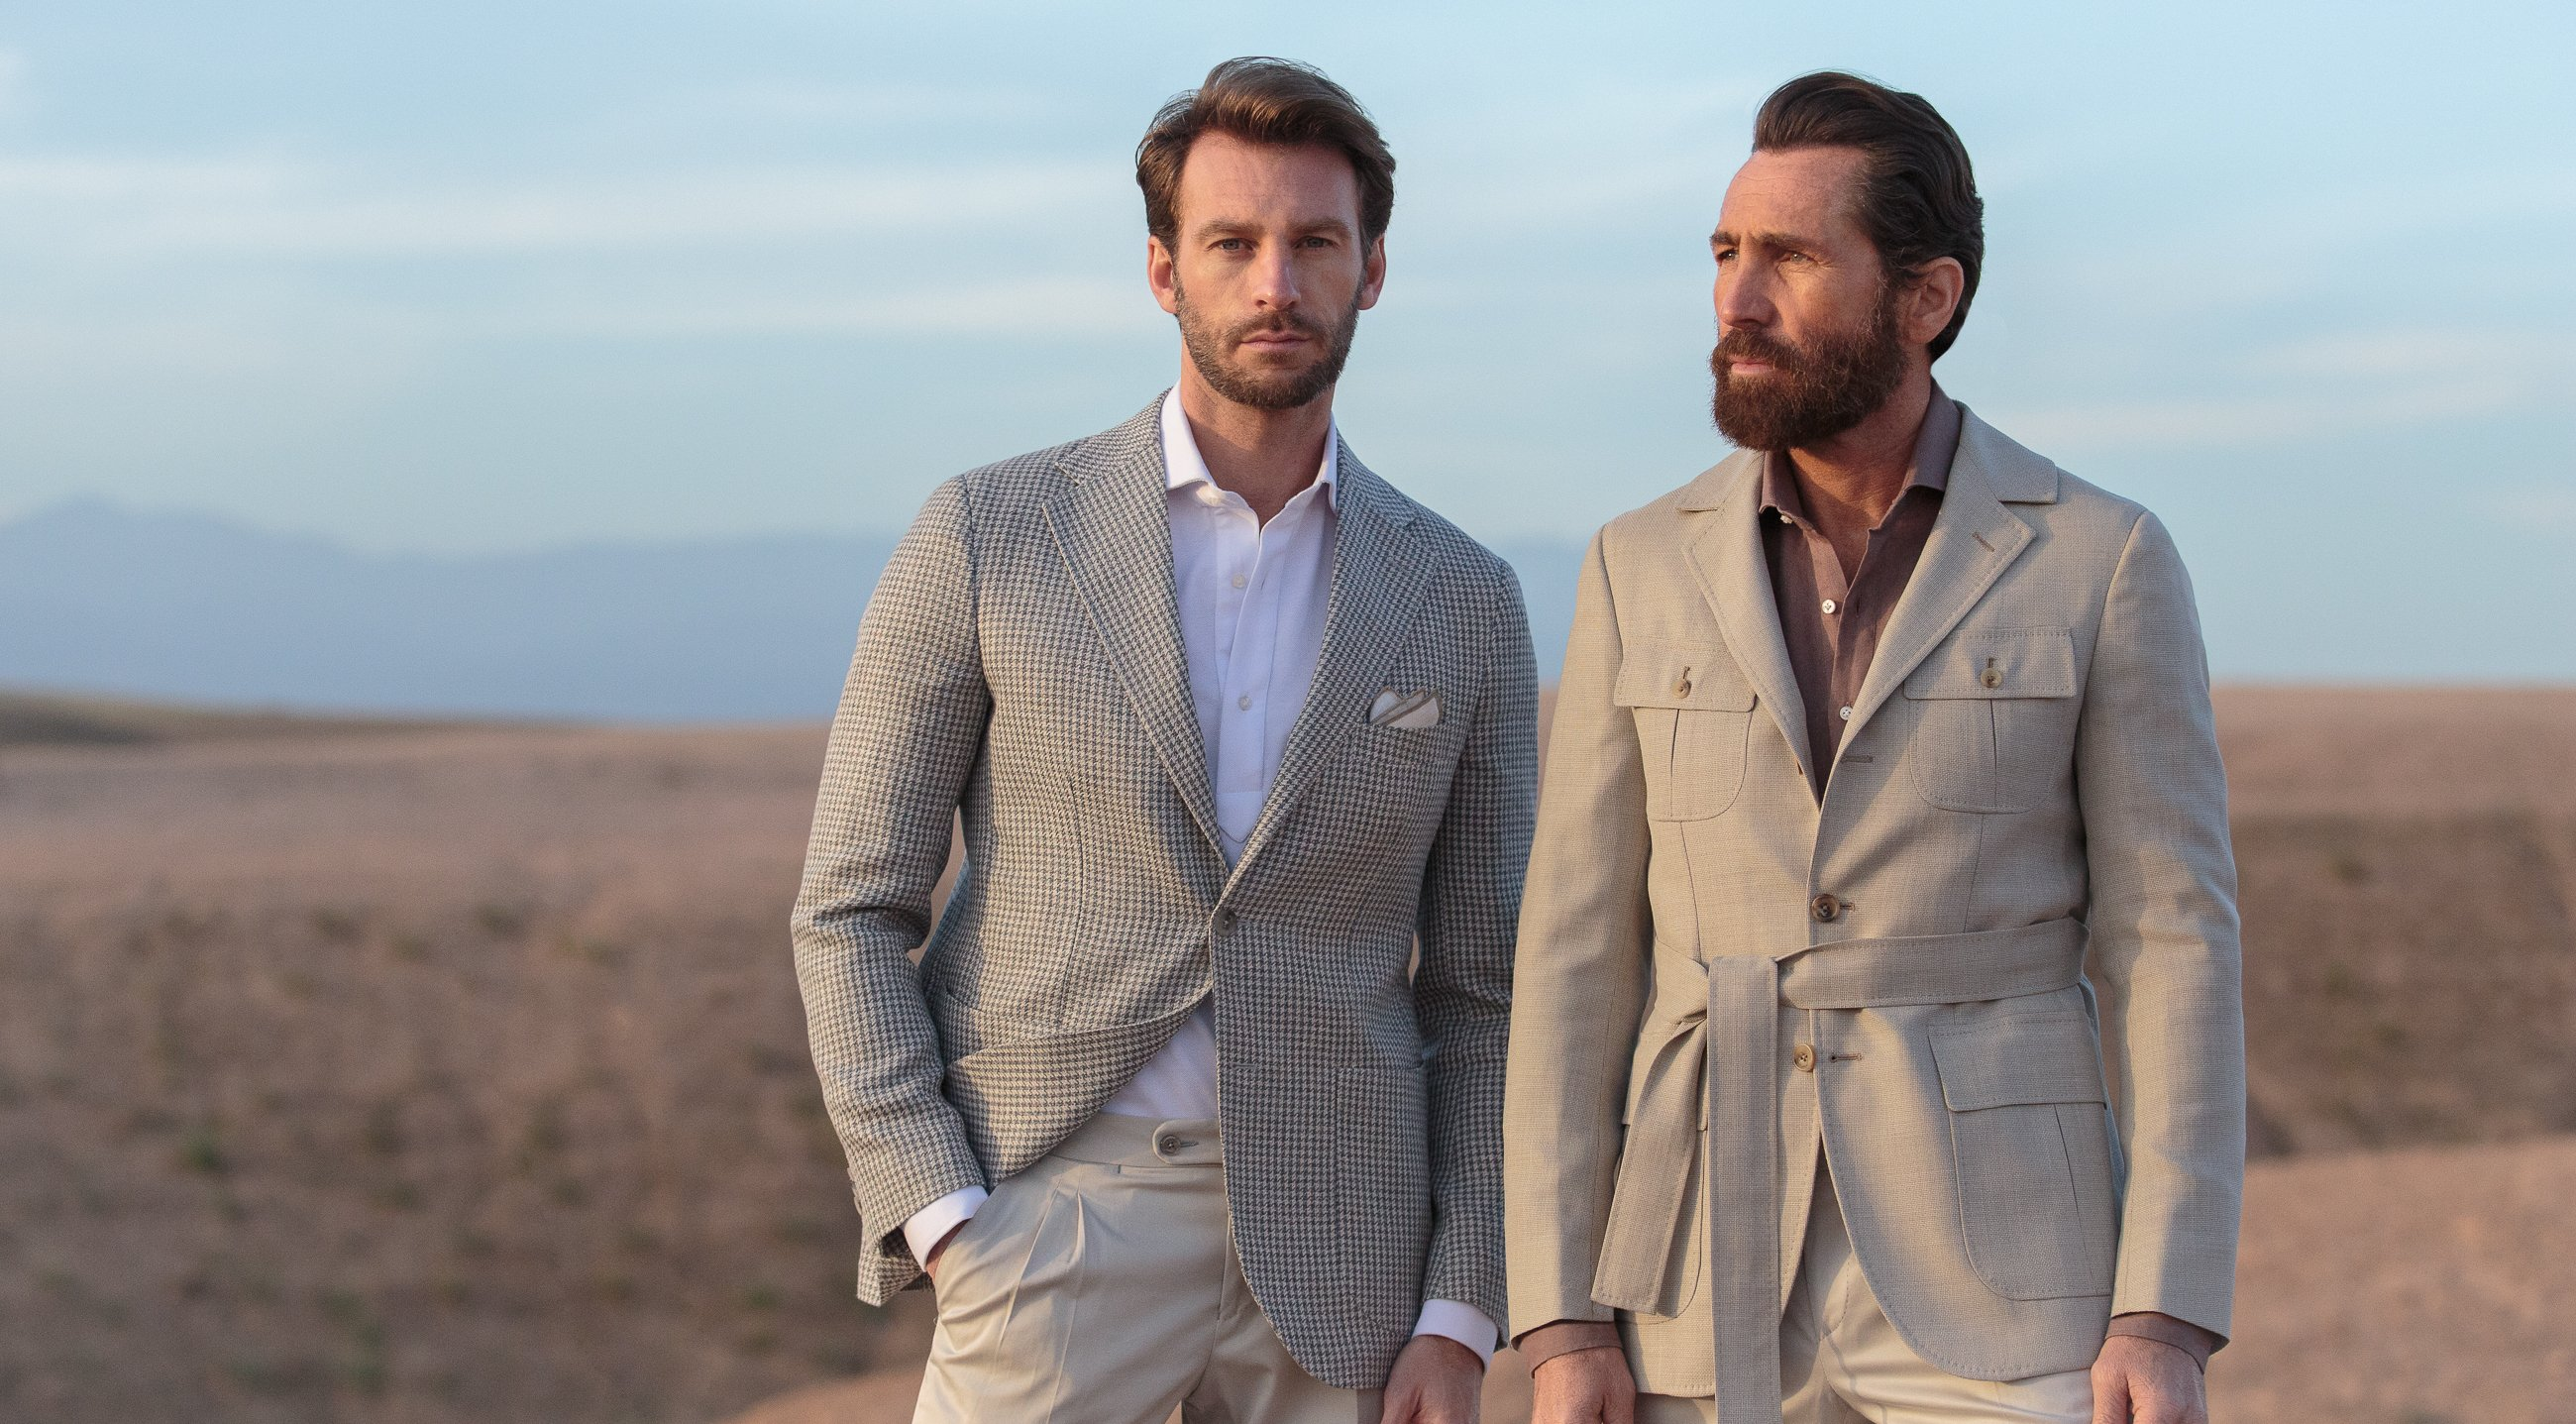 Pini Parma: A Name to Know for True and Accessible Italian Quality Suits